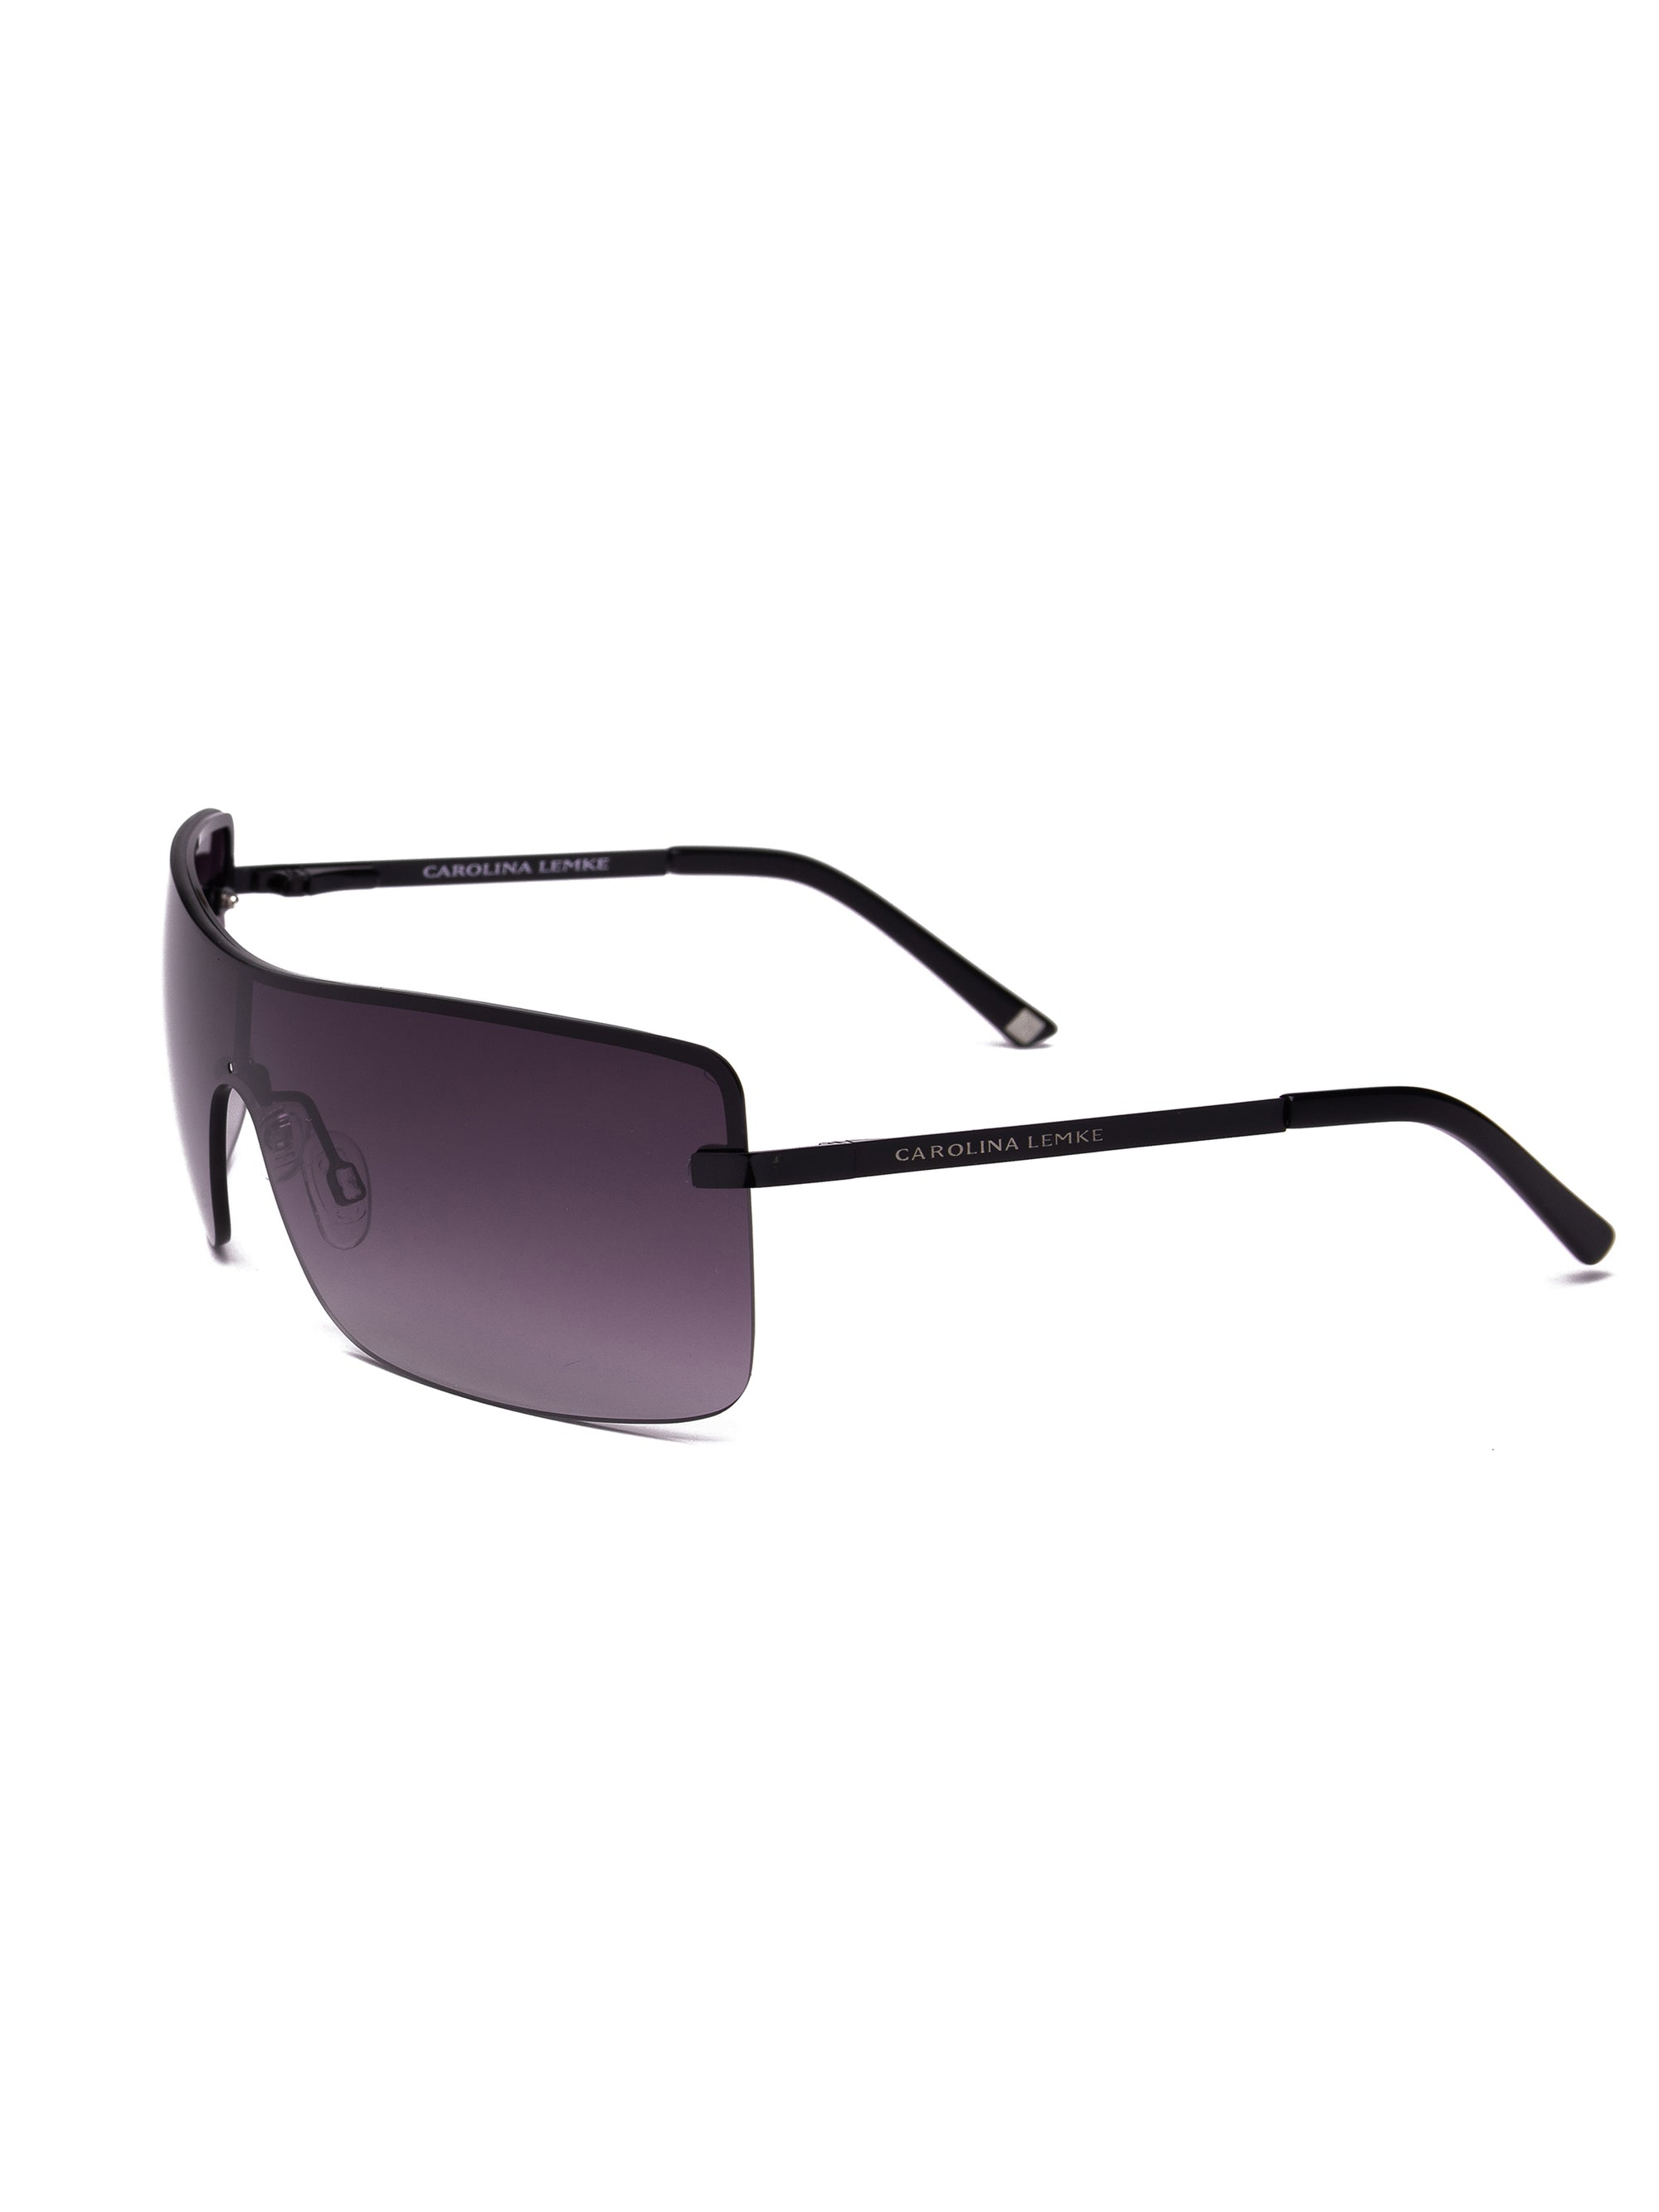 Lentes Carolina Lemke CL1746 01